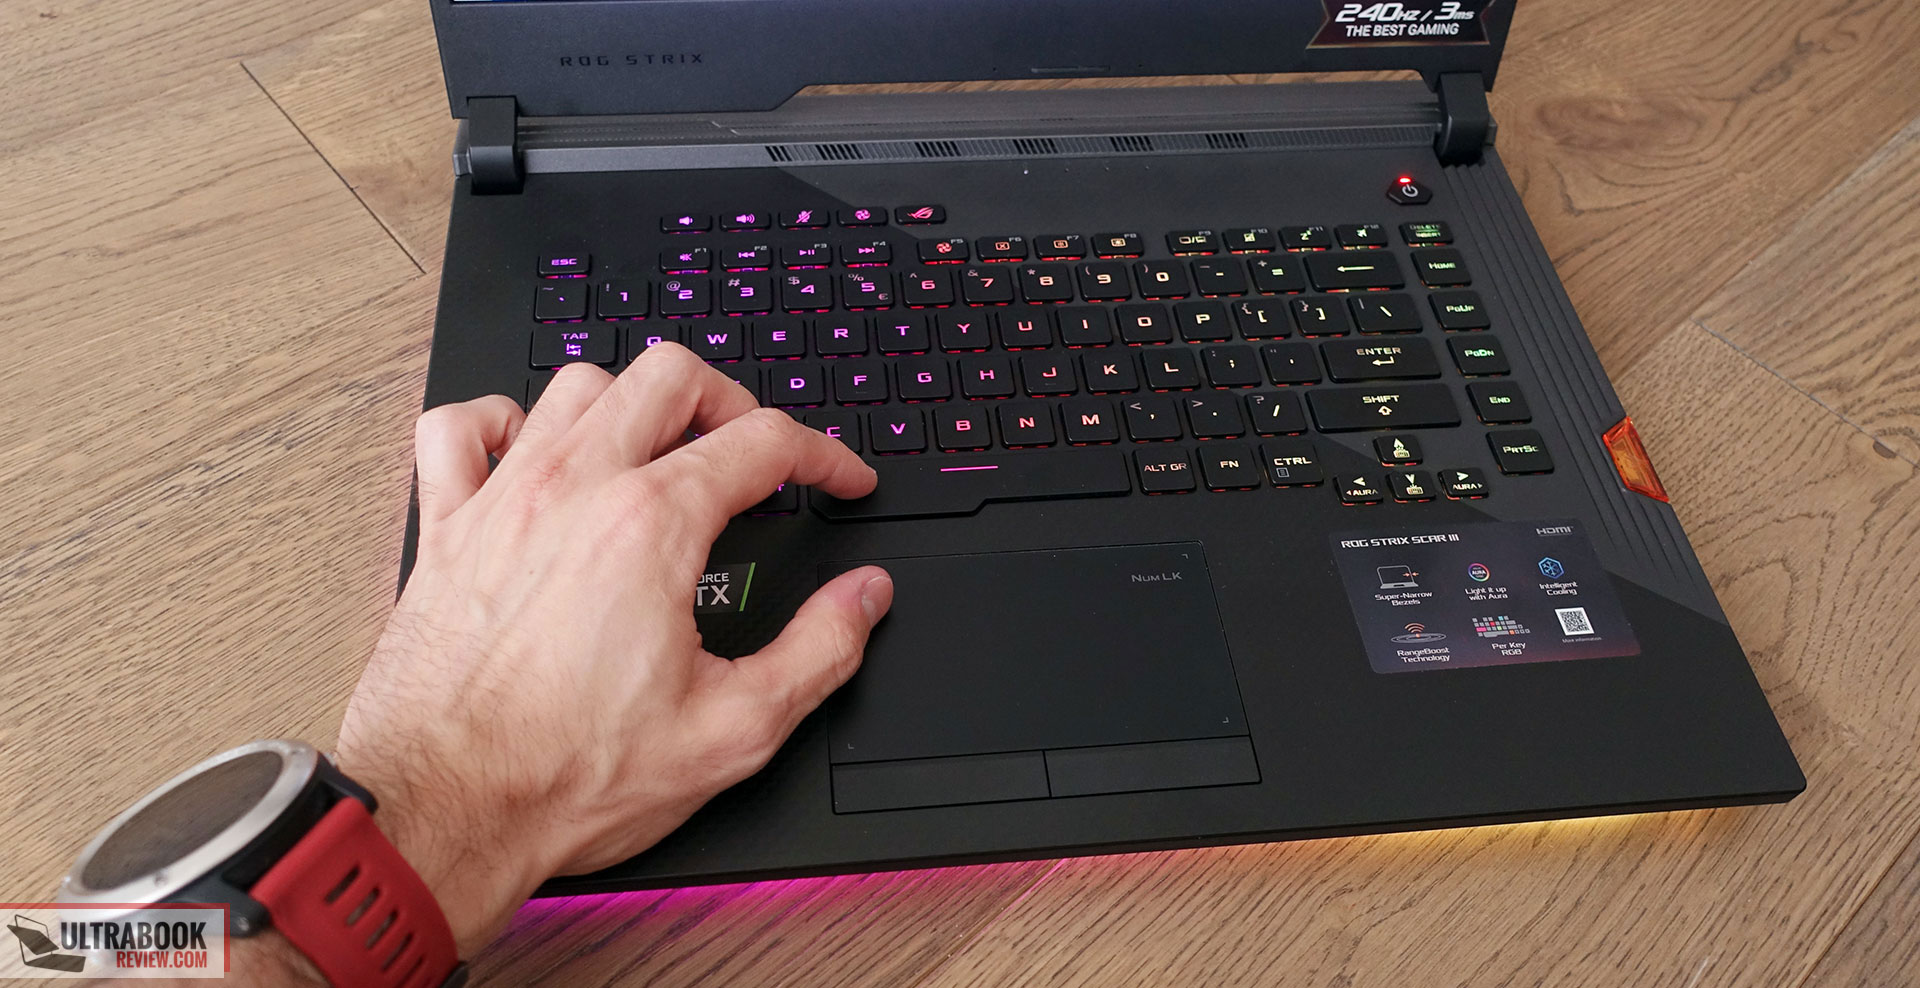 Asus ROG Strix Scar III G531GW keyboard and clickpad